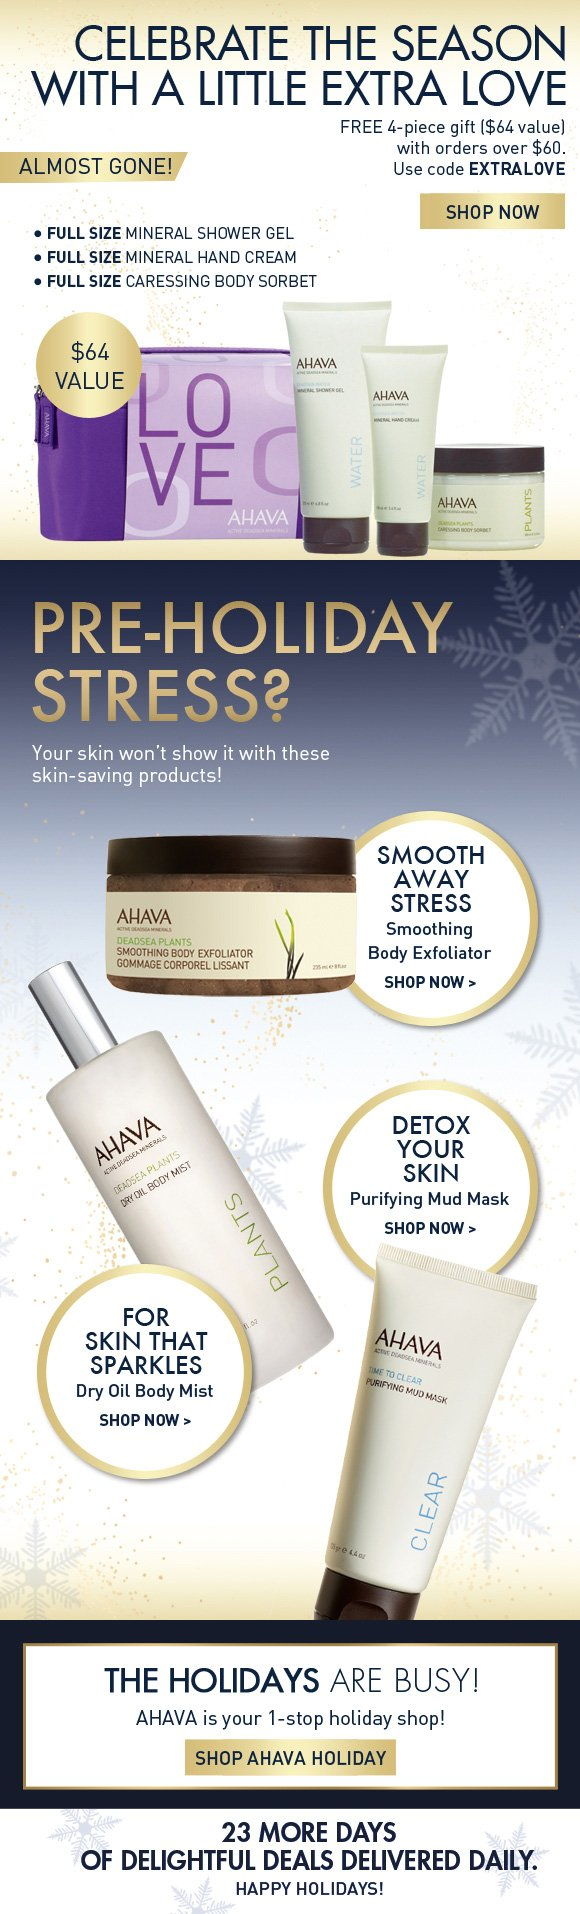 Celebrate the season with a little extra love Free 4-piece gift ($64 value) with orders over $65. almost gone! Use code EXTRALOVE SHOP NOW Pre-Holiday Stress? Your skin won't show it with these pampering products! (flag) Detox your skin Purifying Mud Mask > (flag) Smooth away stress Smoothing Body Exfoliator > (flag)  For skin that sparkles Dry Oil Body Mist > The holidays are busy! AHAVA is your 1-stop holiday shop! Shop AHAVA Holiday  23 more days of delightful deals delivered daily.  Happy holidays!